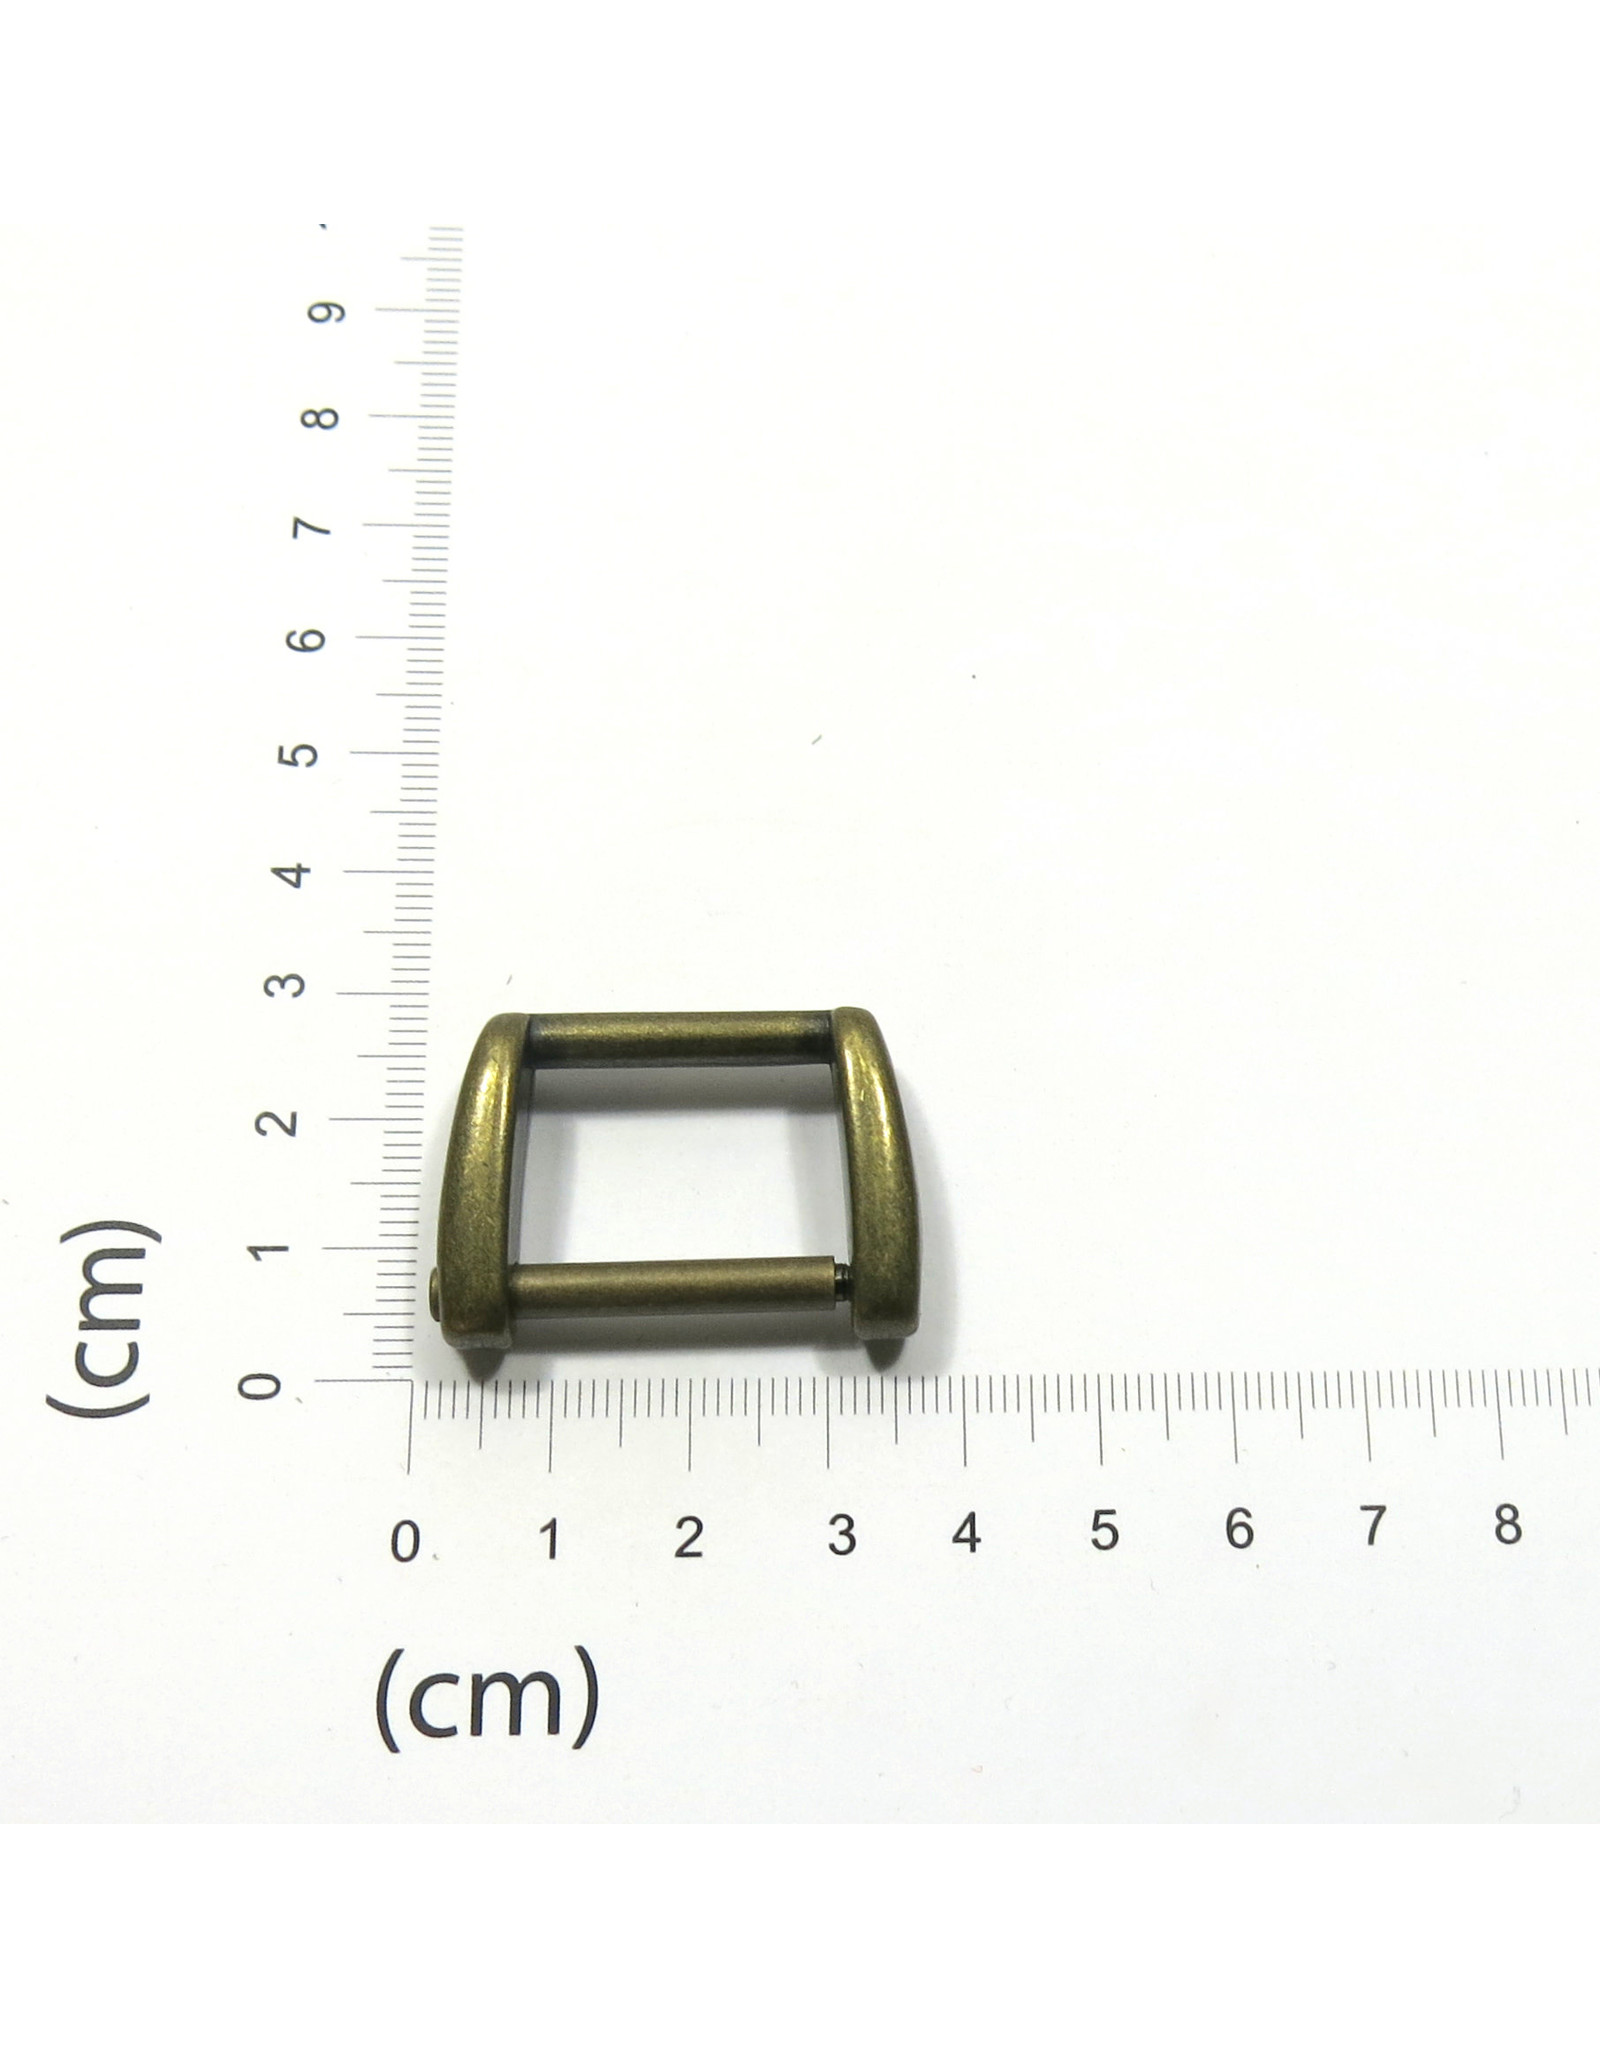 Strap connector (opening)